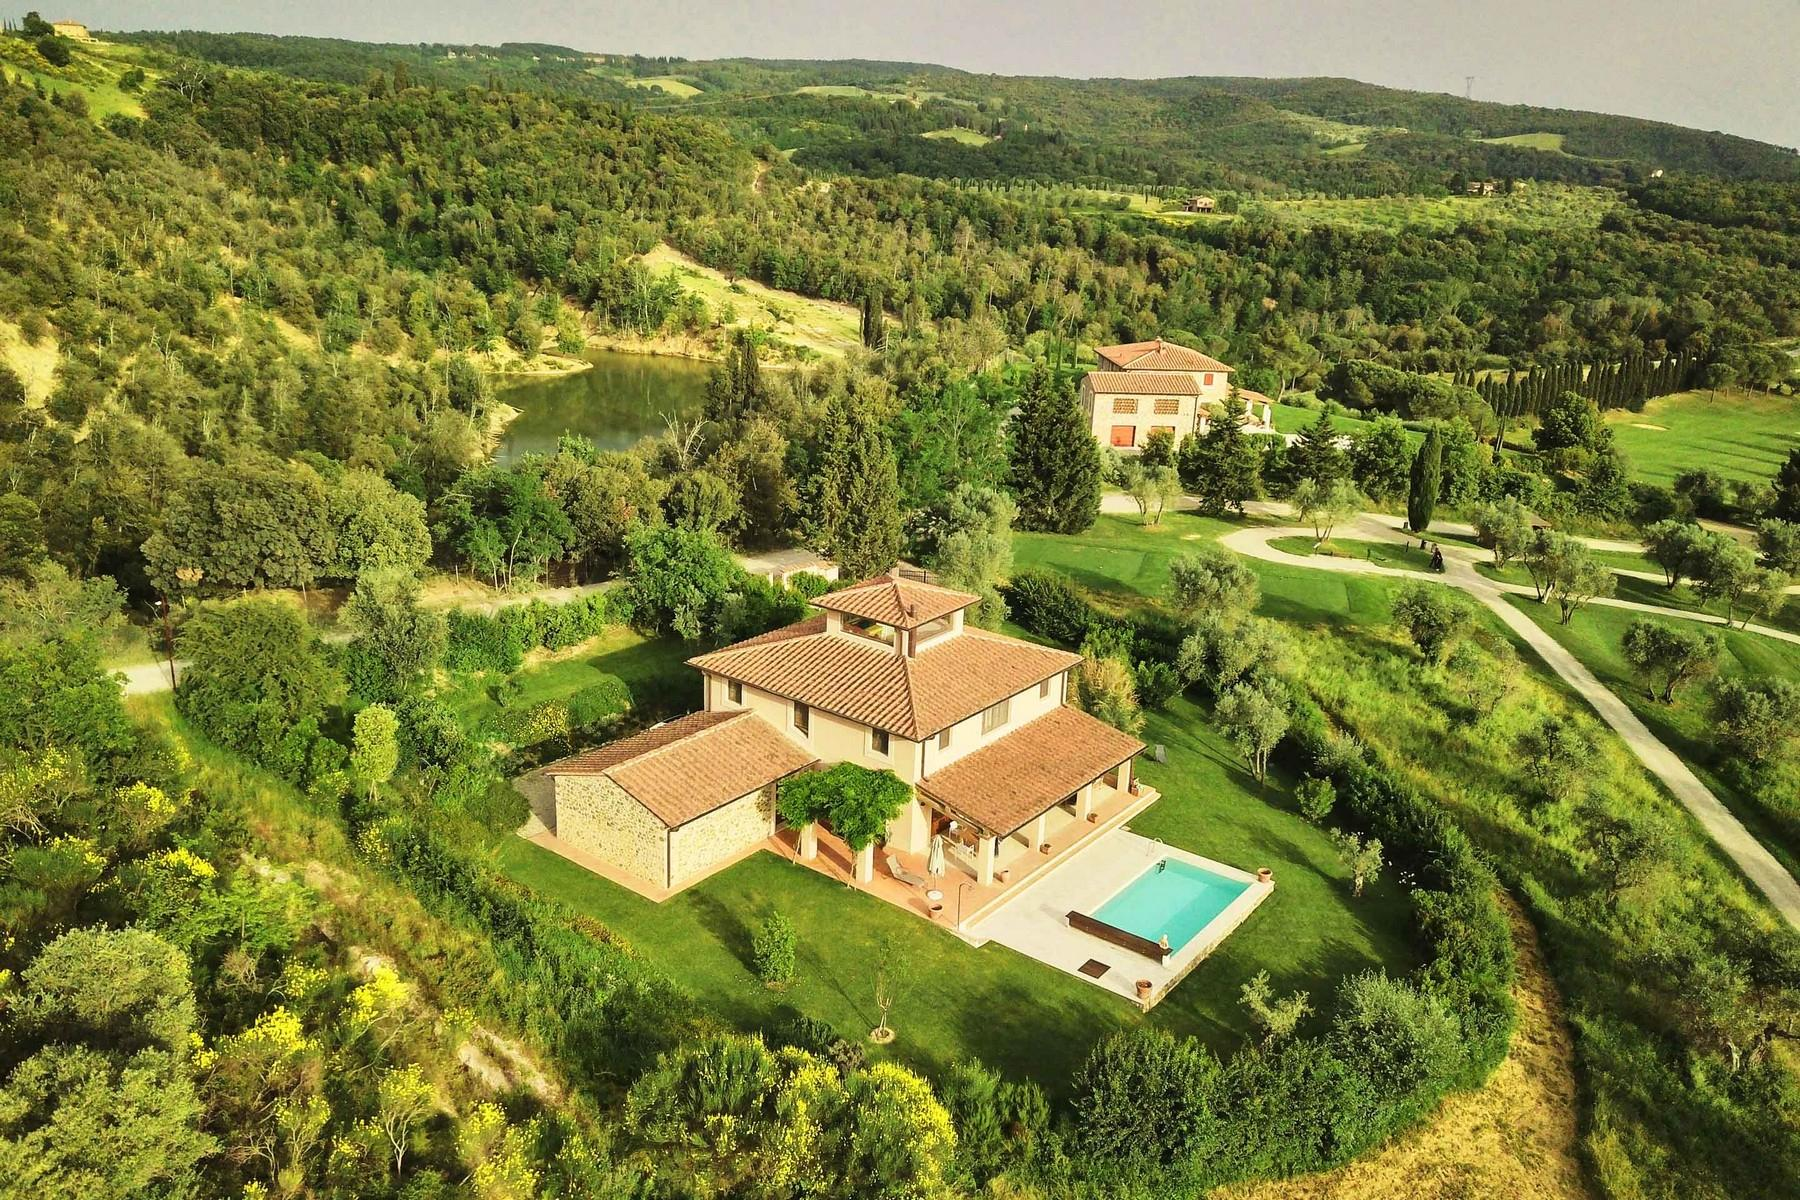 Marvellous new build villas in the Tuscan countryside - 13